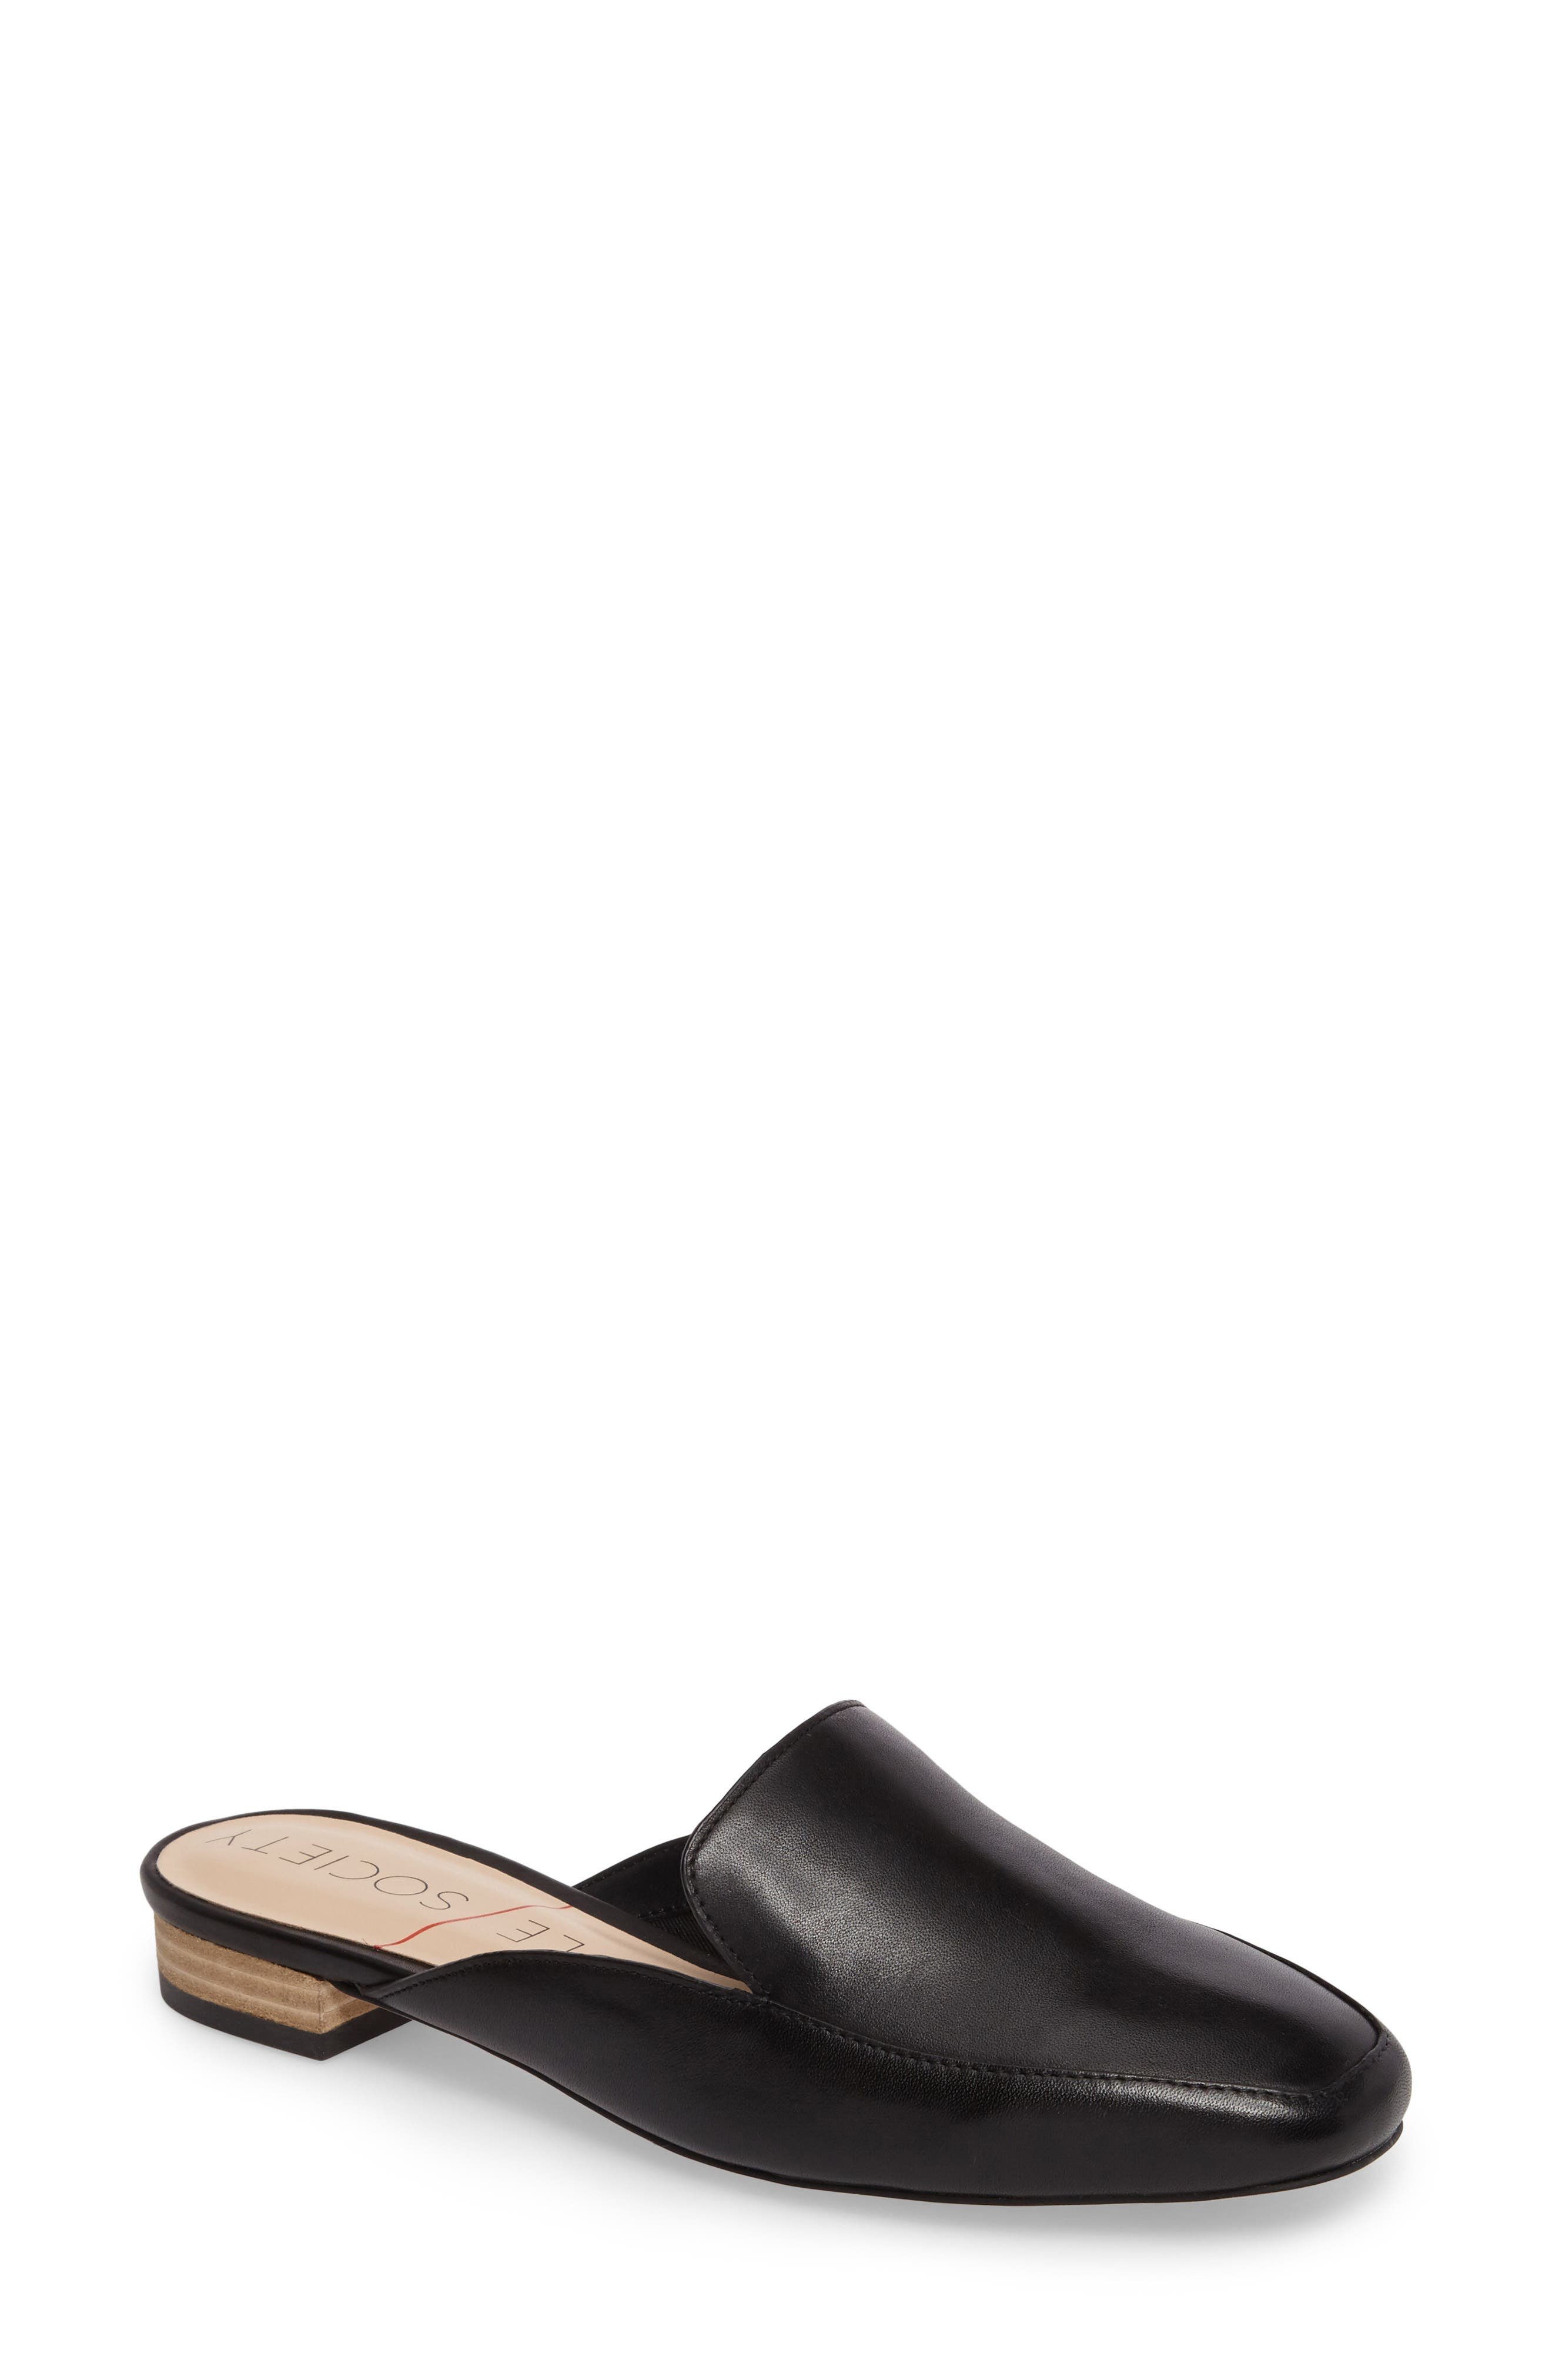 Alternate Image 1 Selected - Sole Society Bedford Loafer Flat (Women)